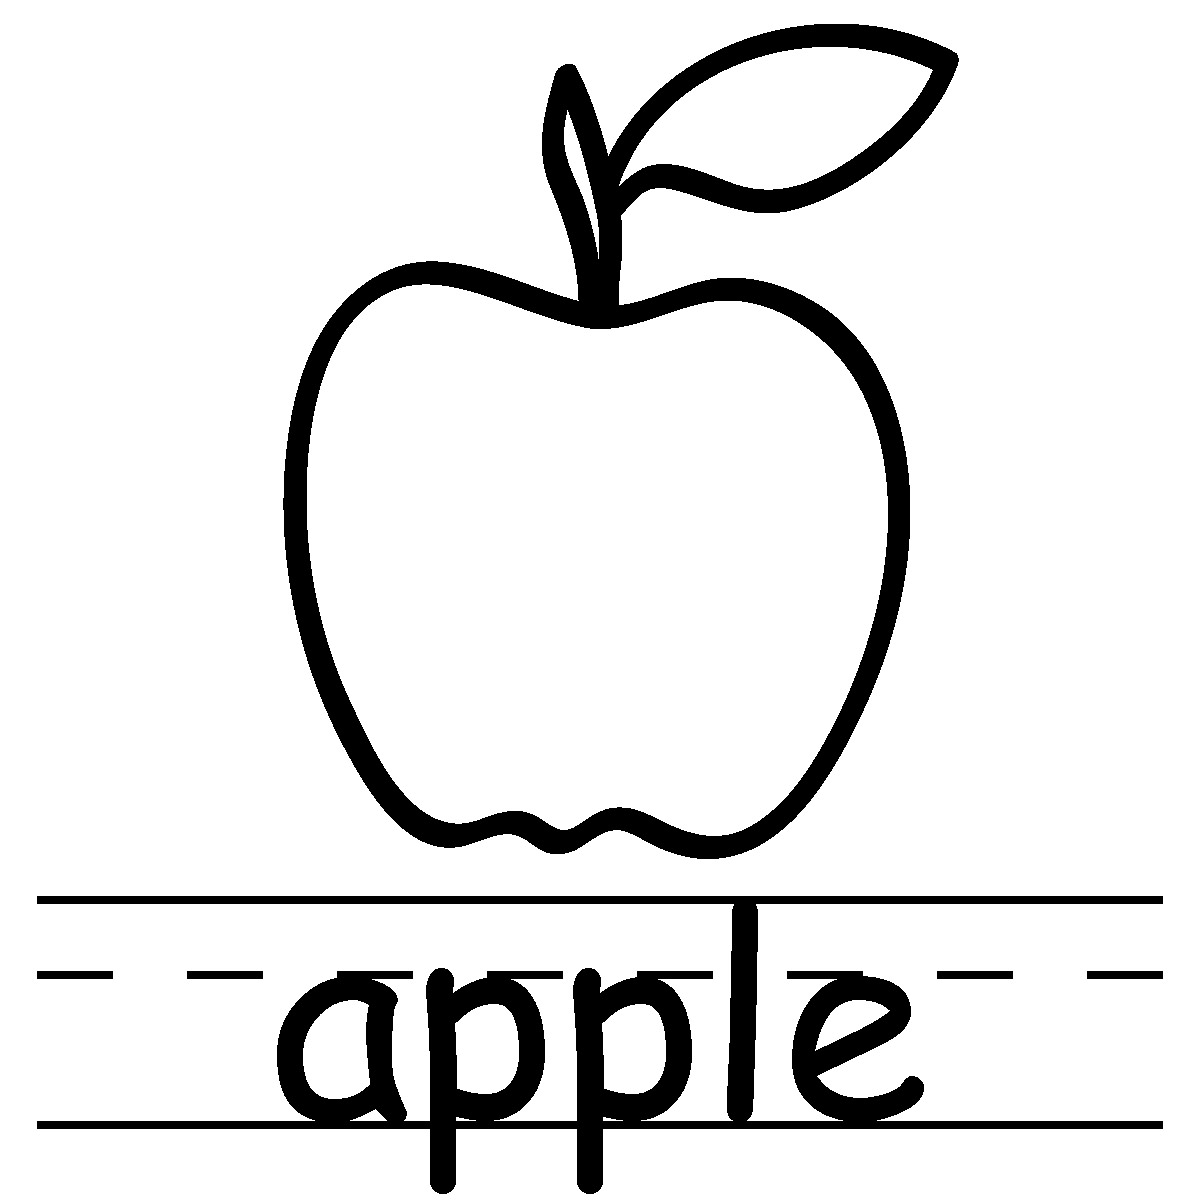 Apple Tree Coloring Pages Preschoolers